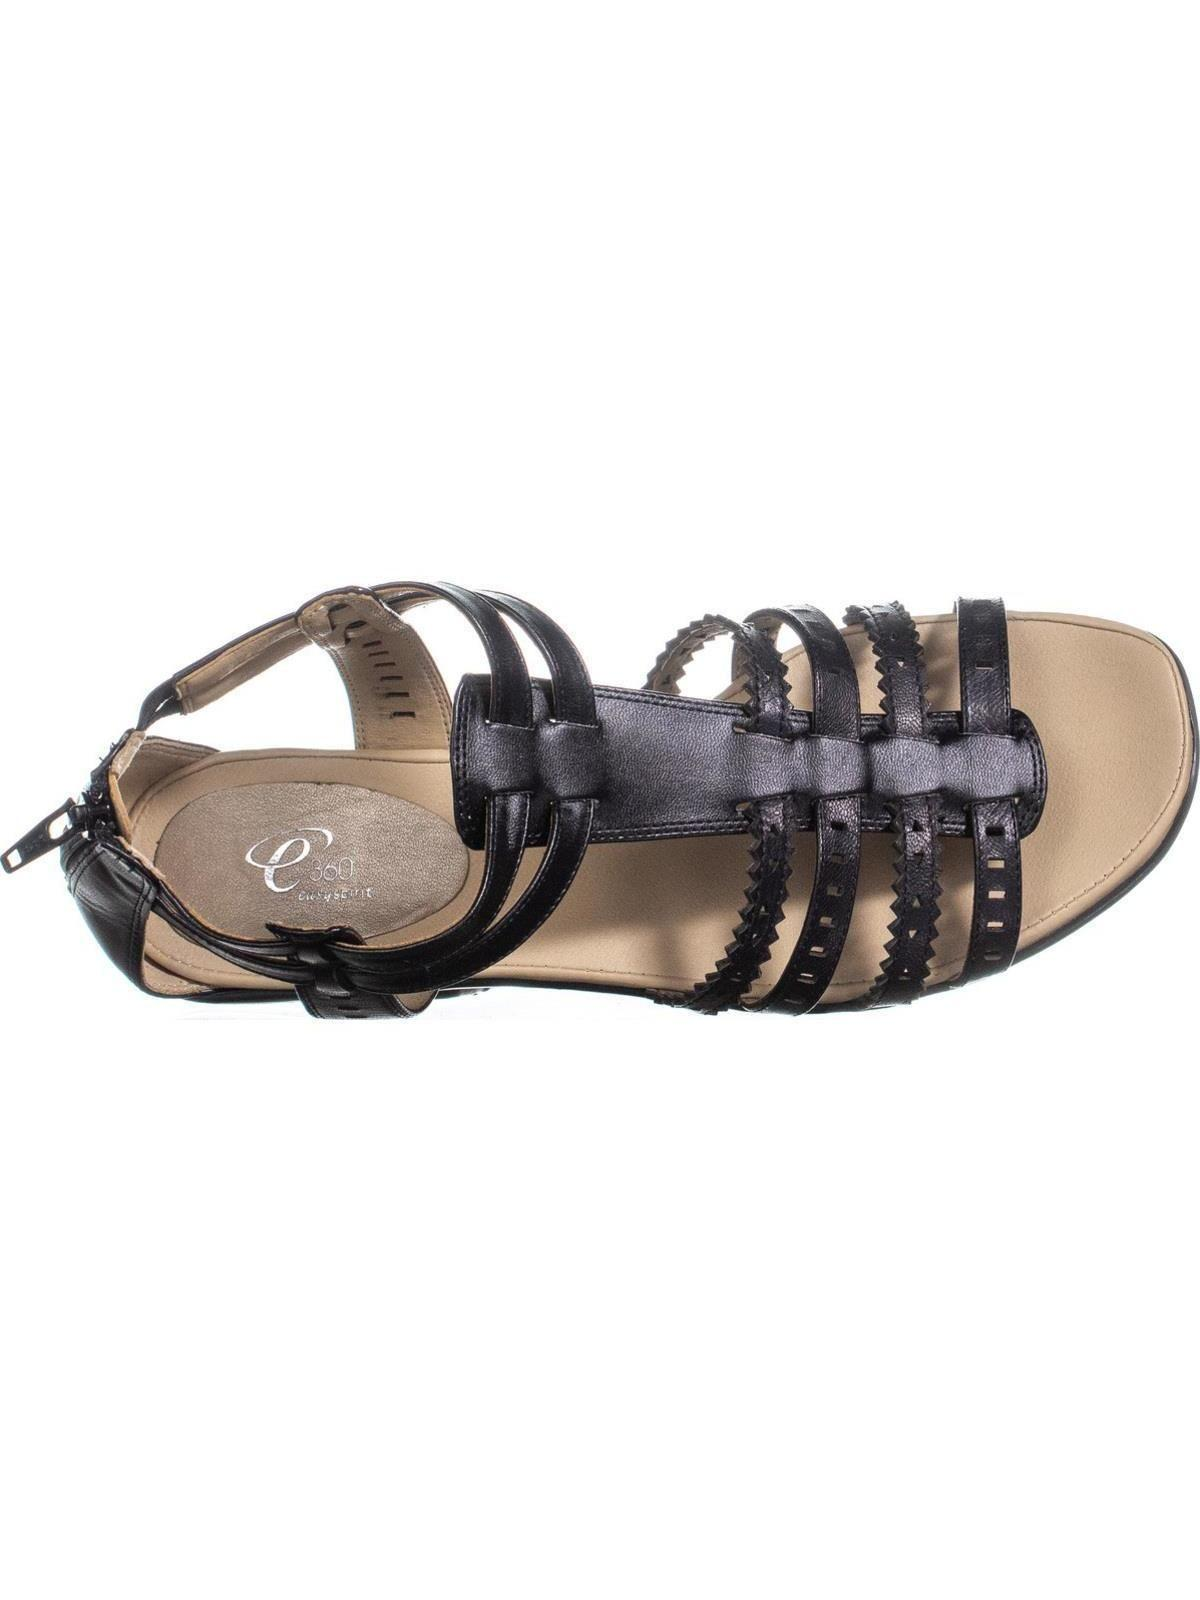 6f345cd8875b Lyst - Easy Spirit Karelly Gladiator Sandals in Black